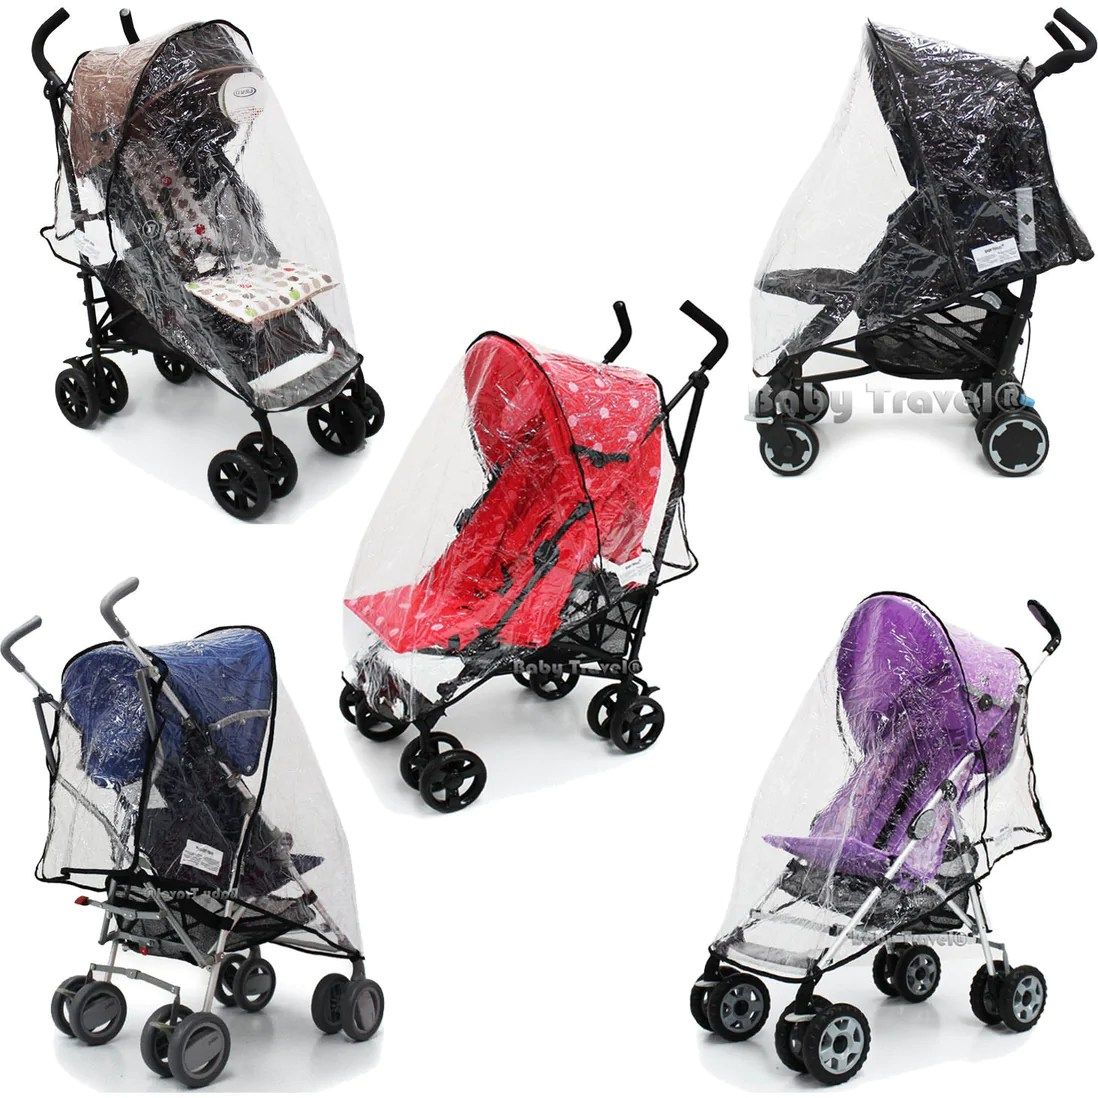 Stroller Travel System Ebay Sale Now On Save Up To 50 Luxury Baby Prducts By Isafe